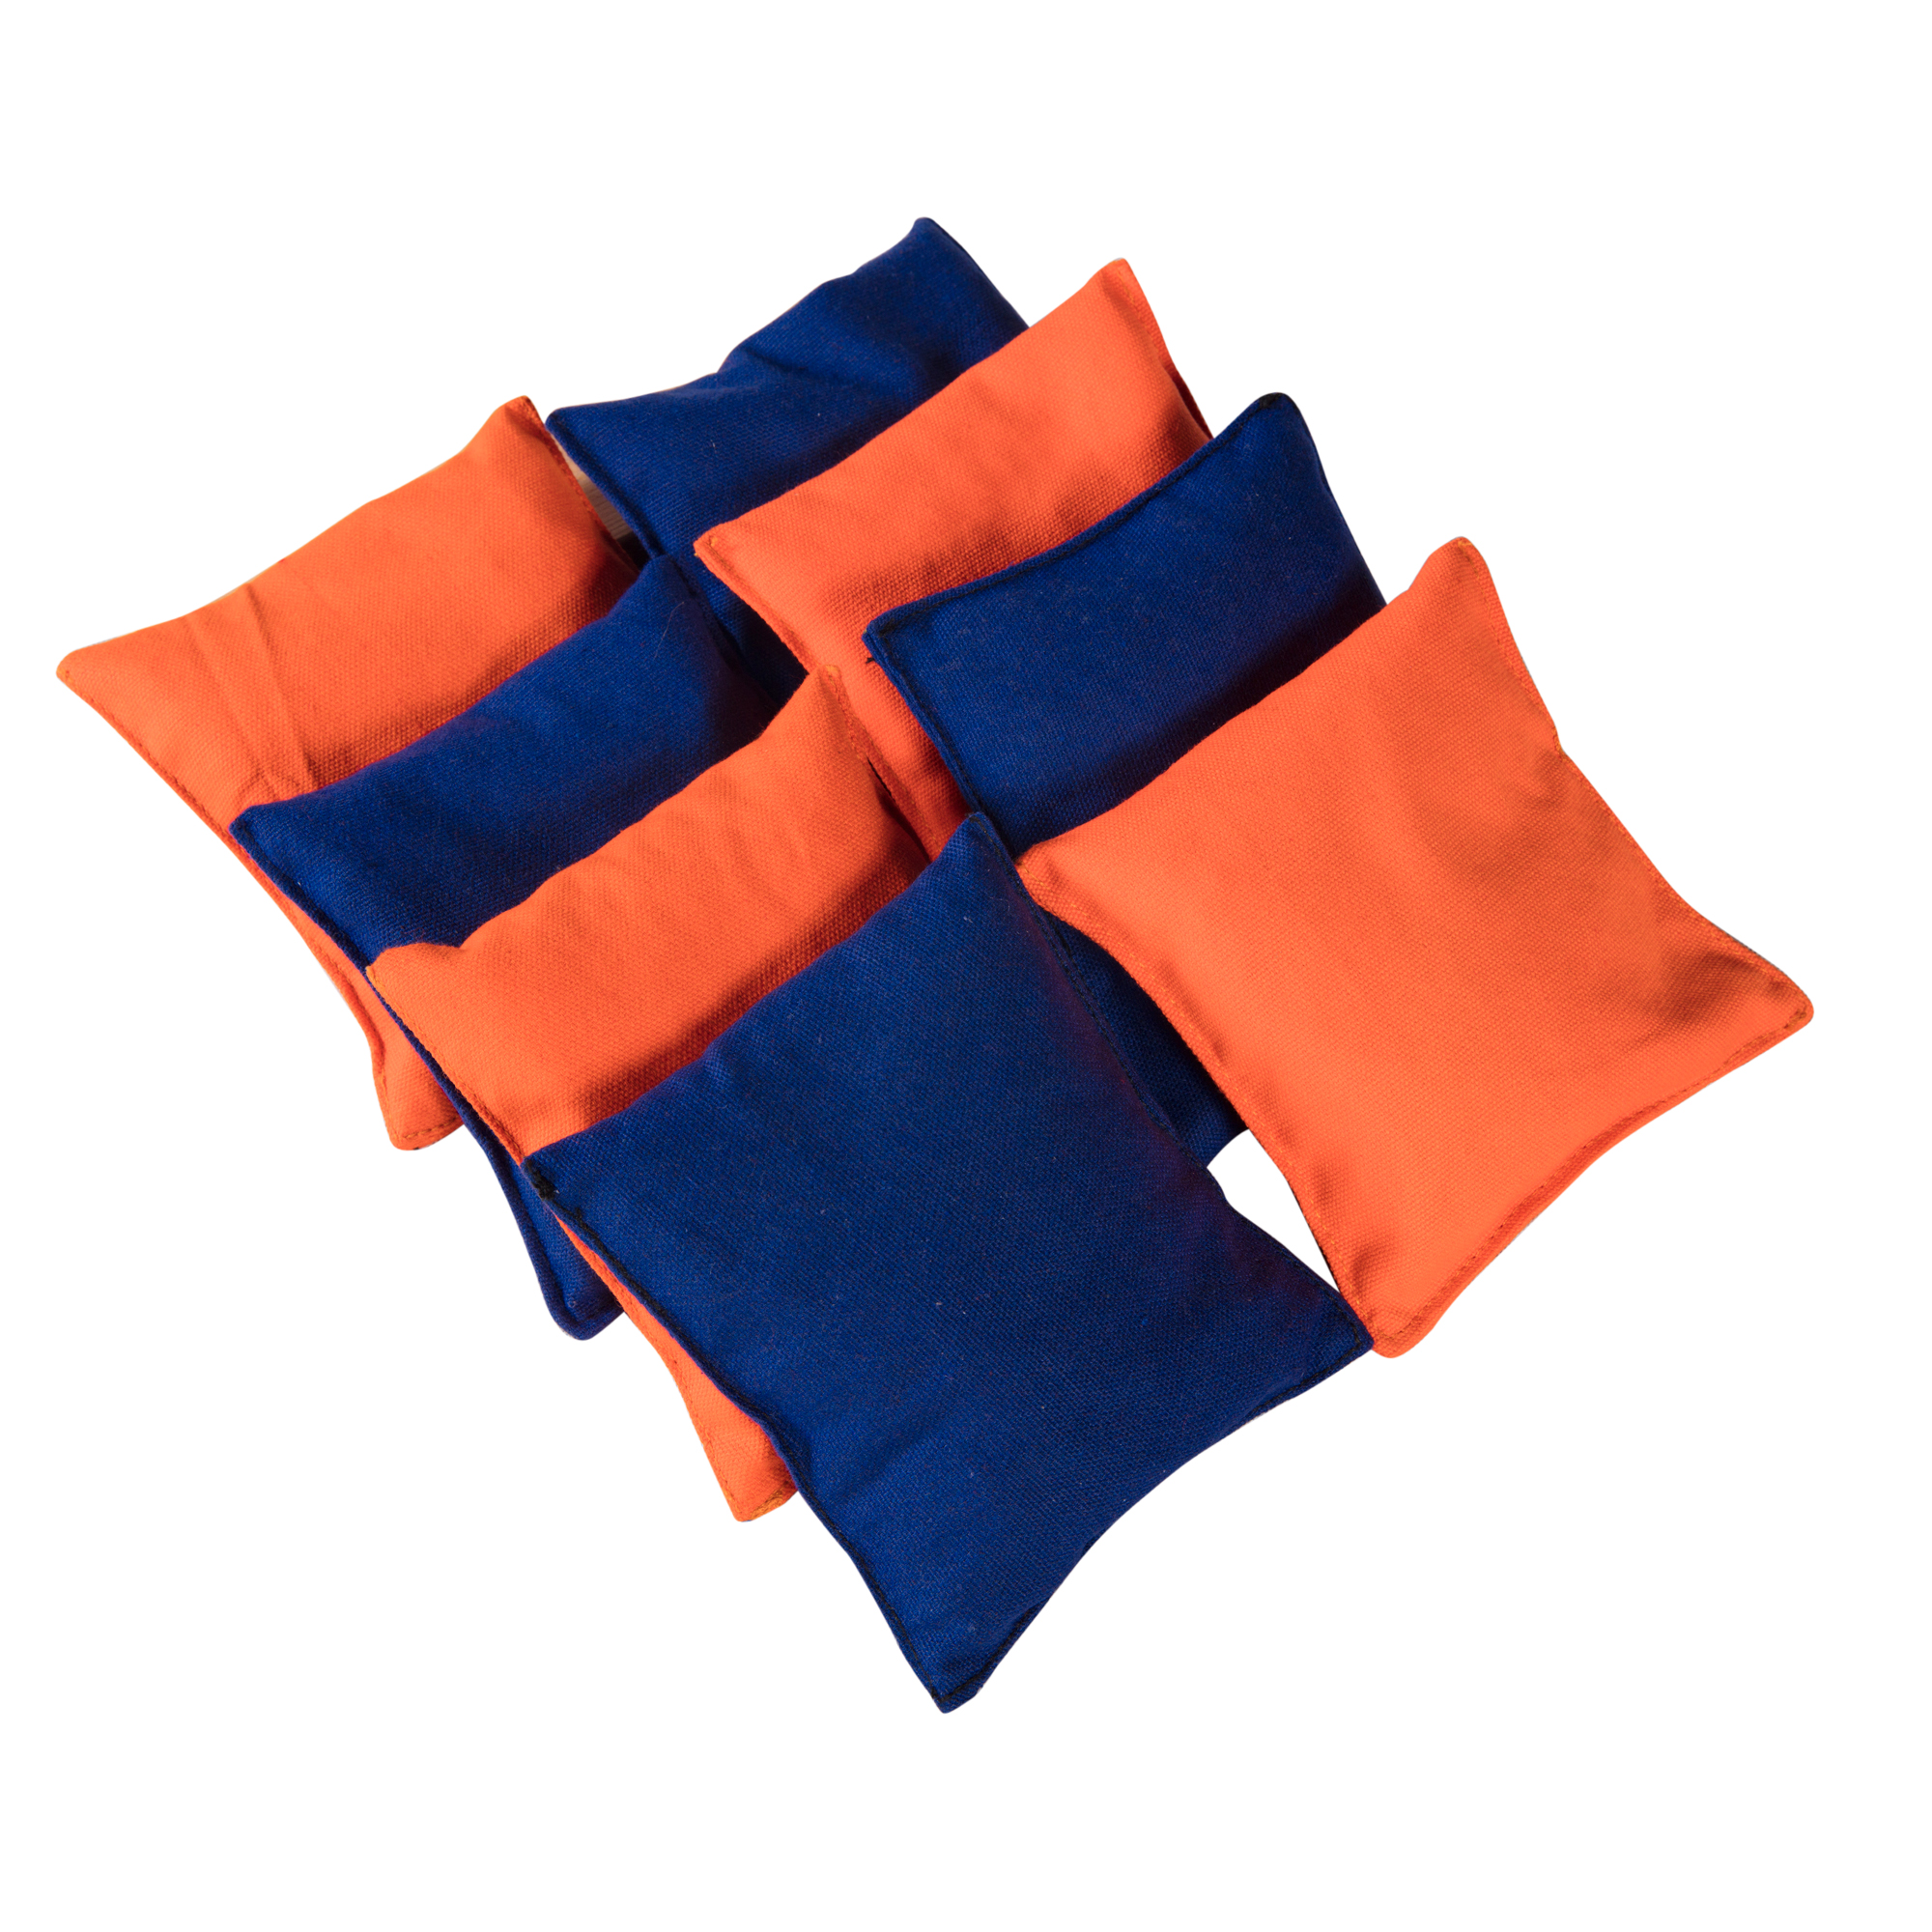 Cornhole Beanbags Replacement Orange & Blue by Phelps Group